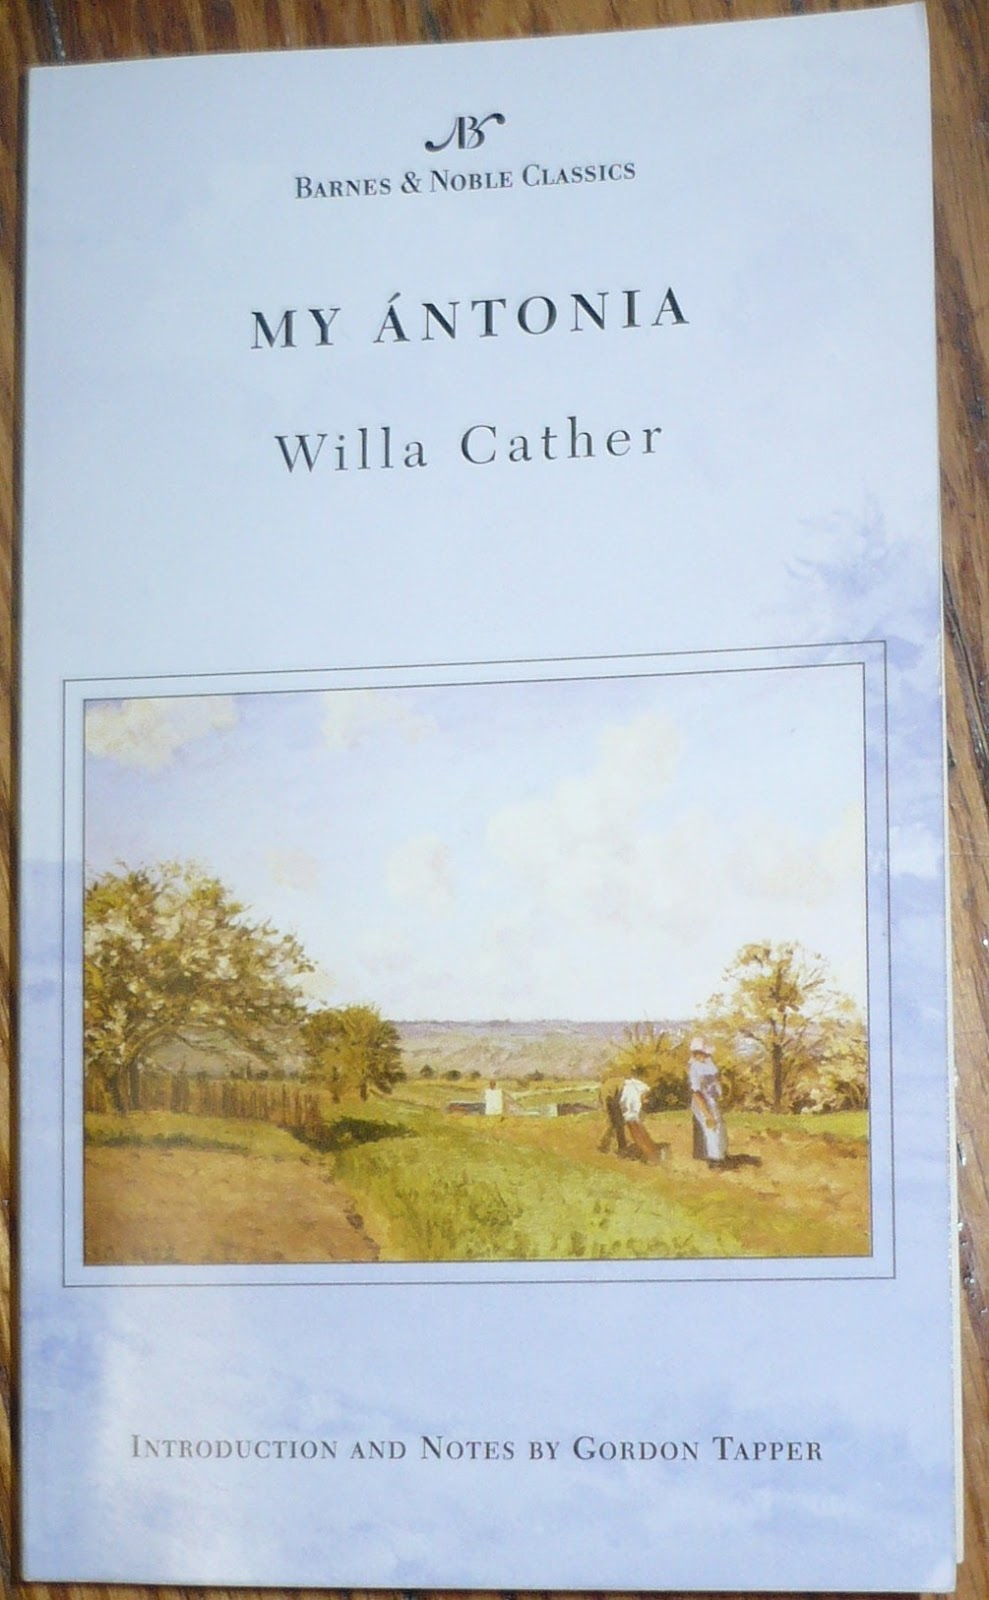 analysis of my antonia novel by willa cather My antonia summary willa cather's my antonia (1918) is the story of both antonia shimerda, a bohemian immigrant to the state of nebraska in the 1880s, and the novel's american-born narrator, jim burden.